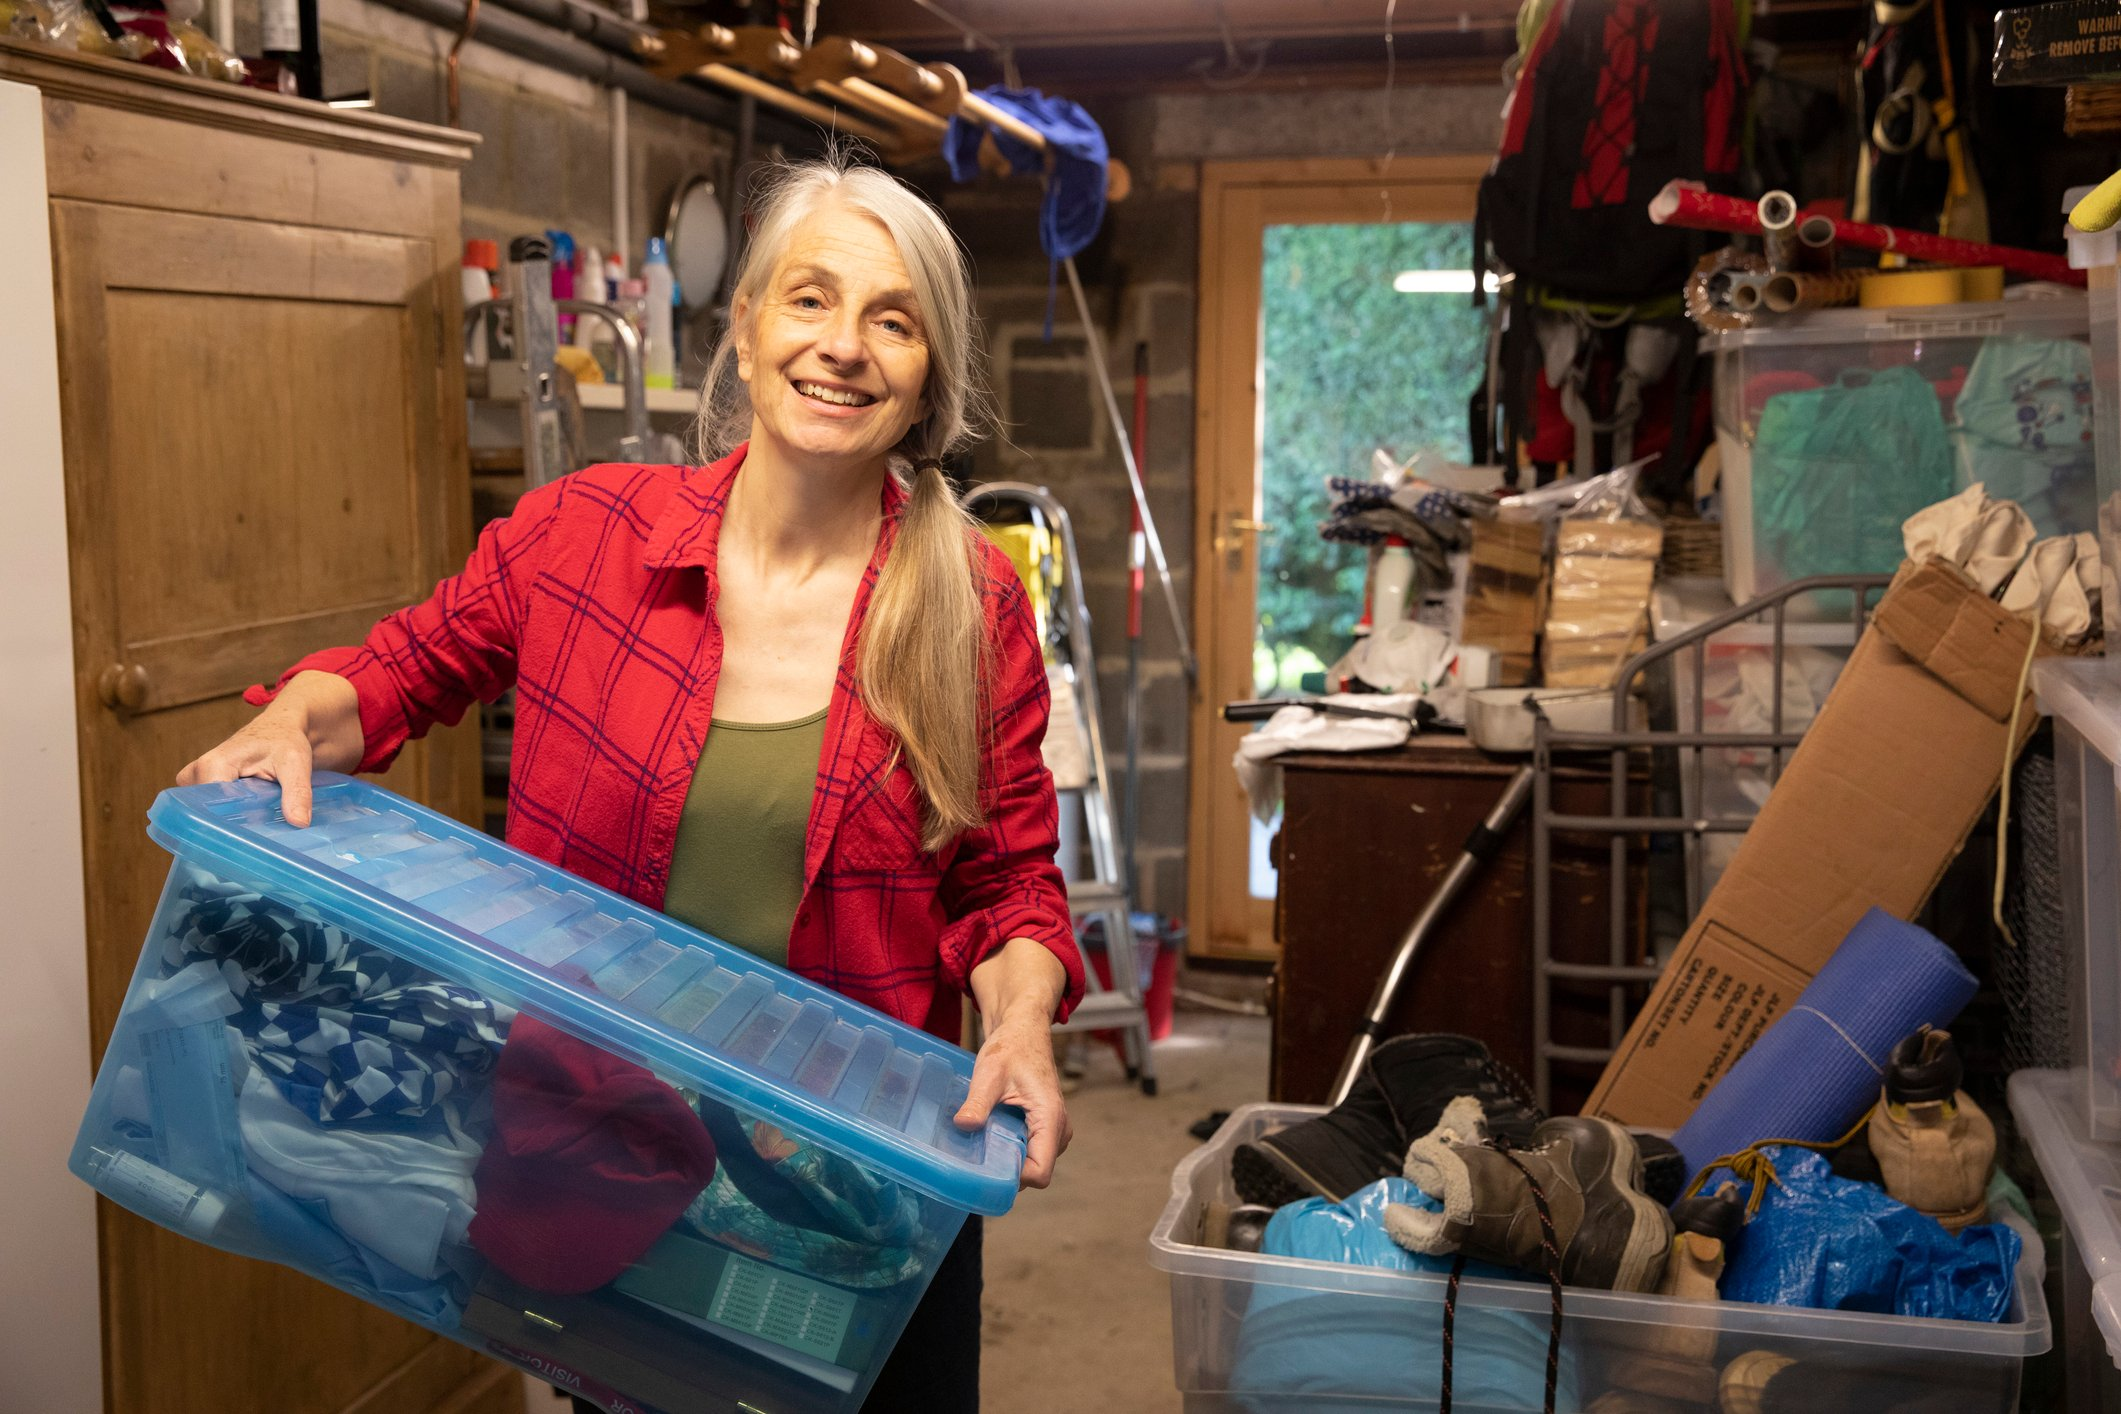 A mature woman smiles as she carries boxes of belongings to sort through whilst in lockdown at home.